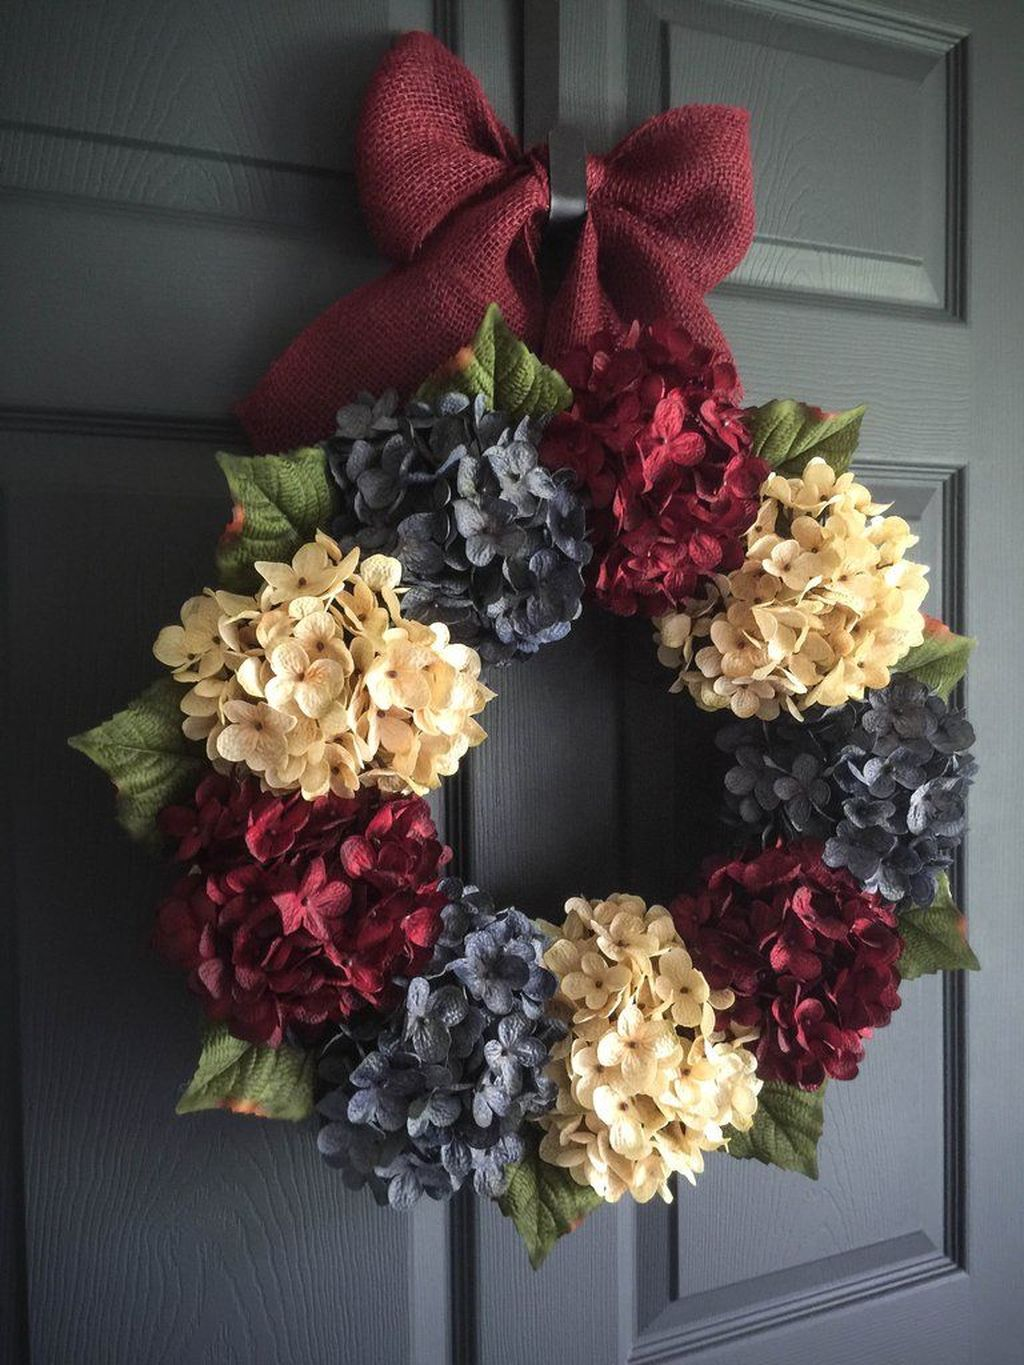 Inspiring Summer Wreath Design Ideas You Should Copy 27